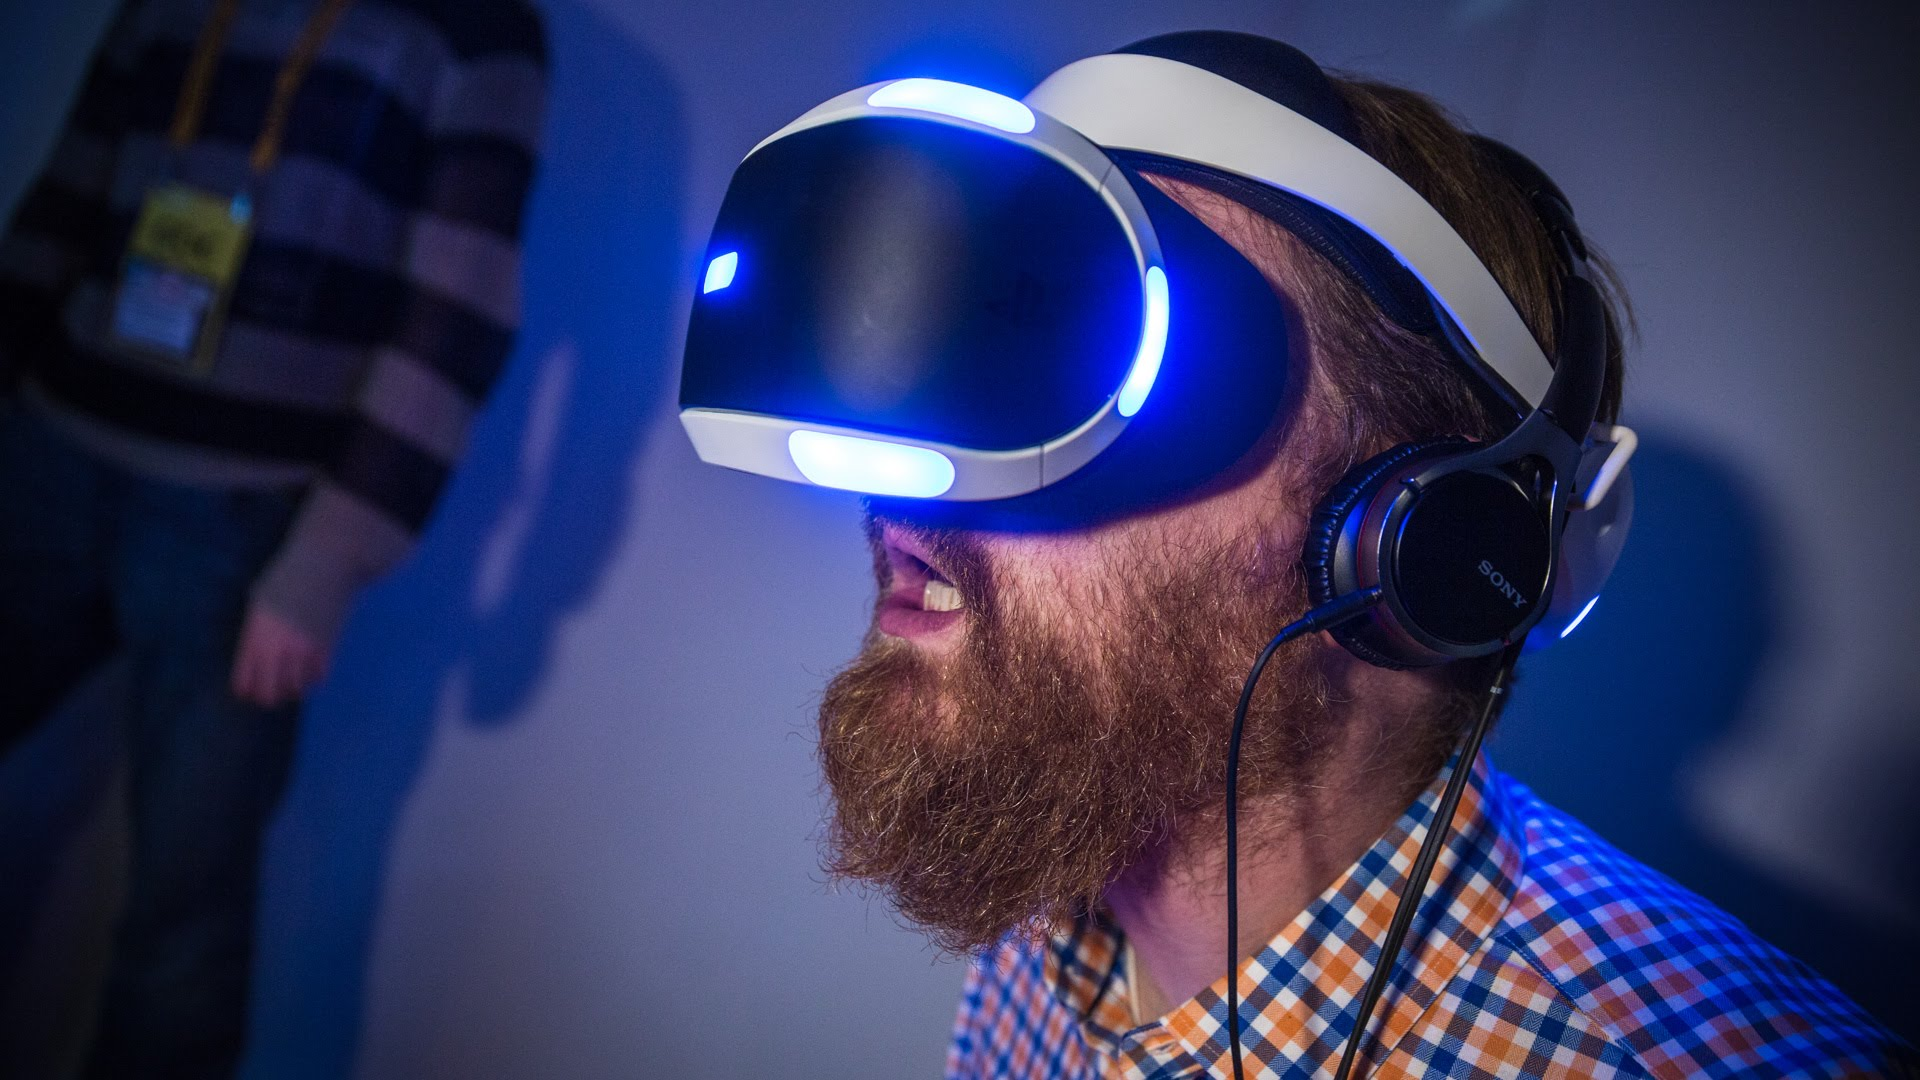 Project Morpheus Hands on Video